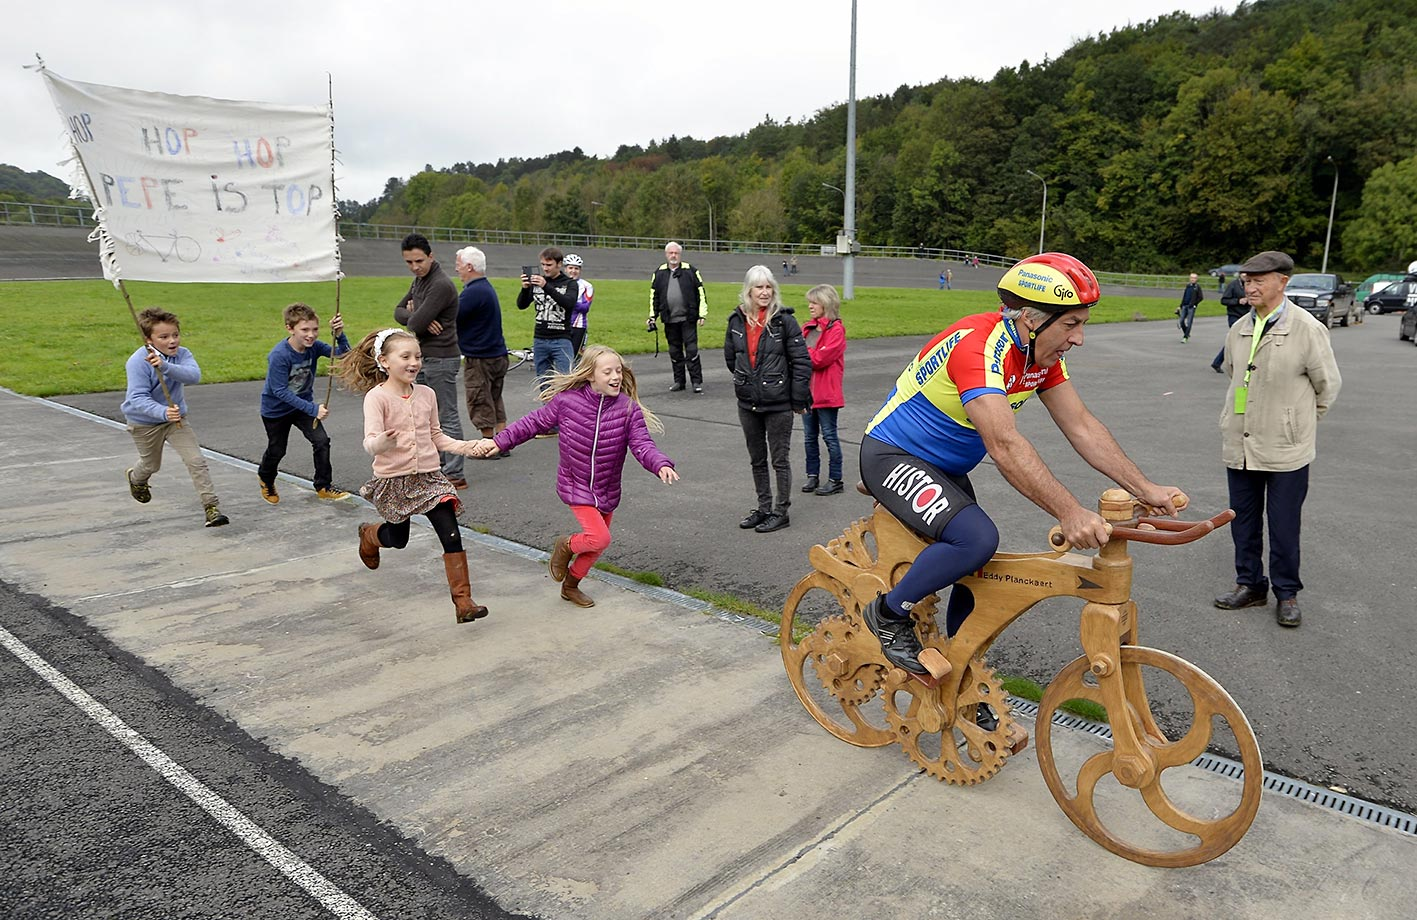 Eddy Planckaert, a former cyclist for Belgium, attempts to break the world hour record on a wooden bike at the velodrome in Jemelle, Rochefort, Belgium.